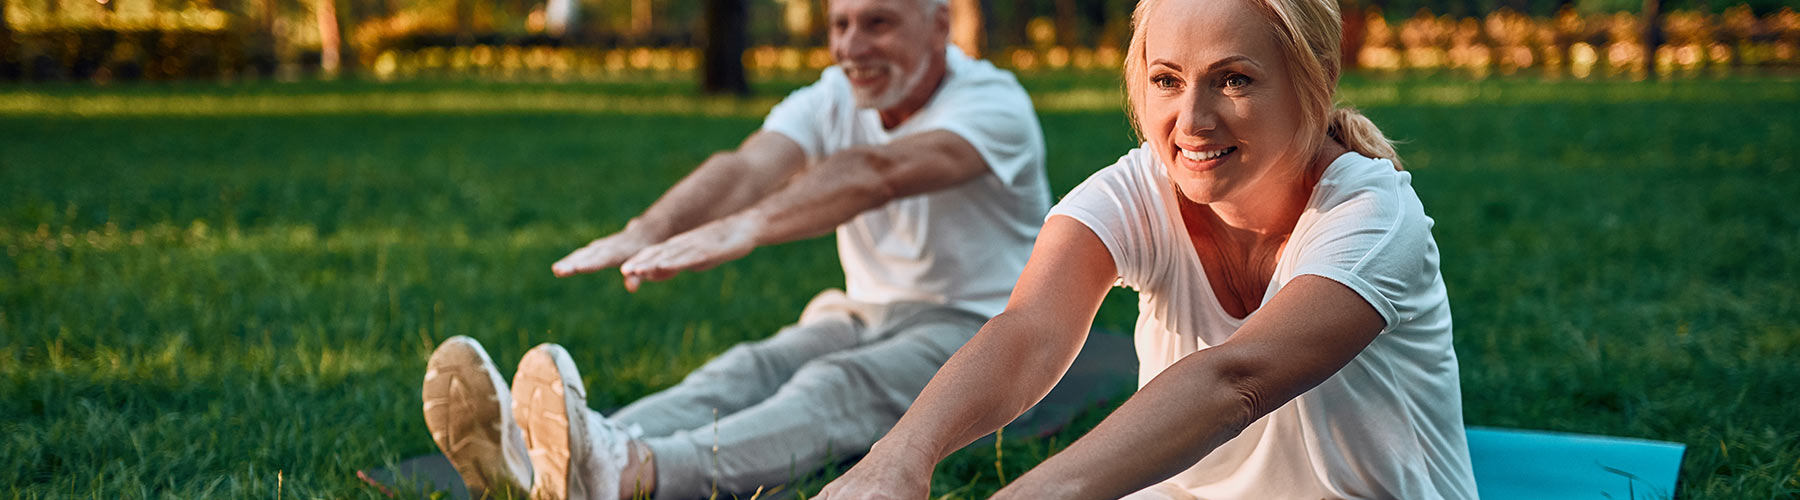 Middle aged couple stretching in park